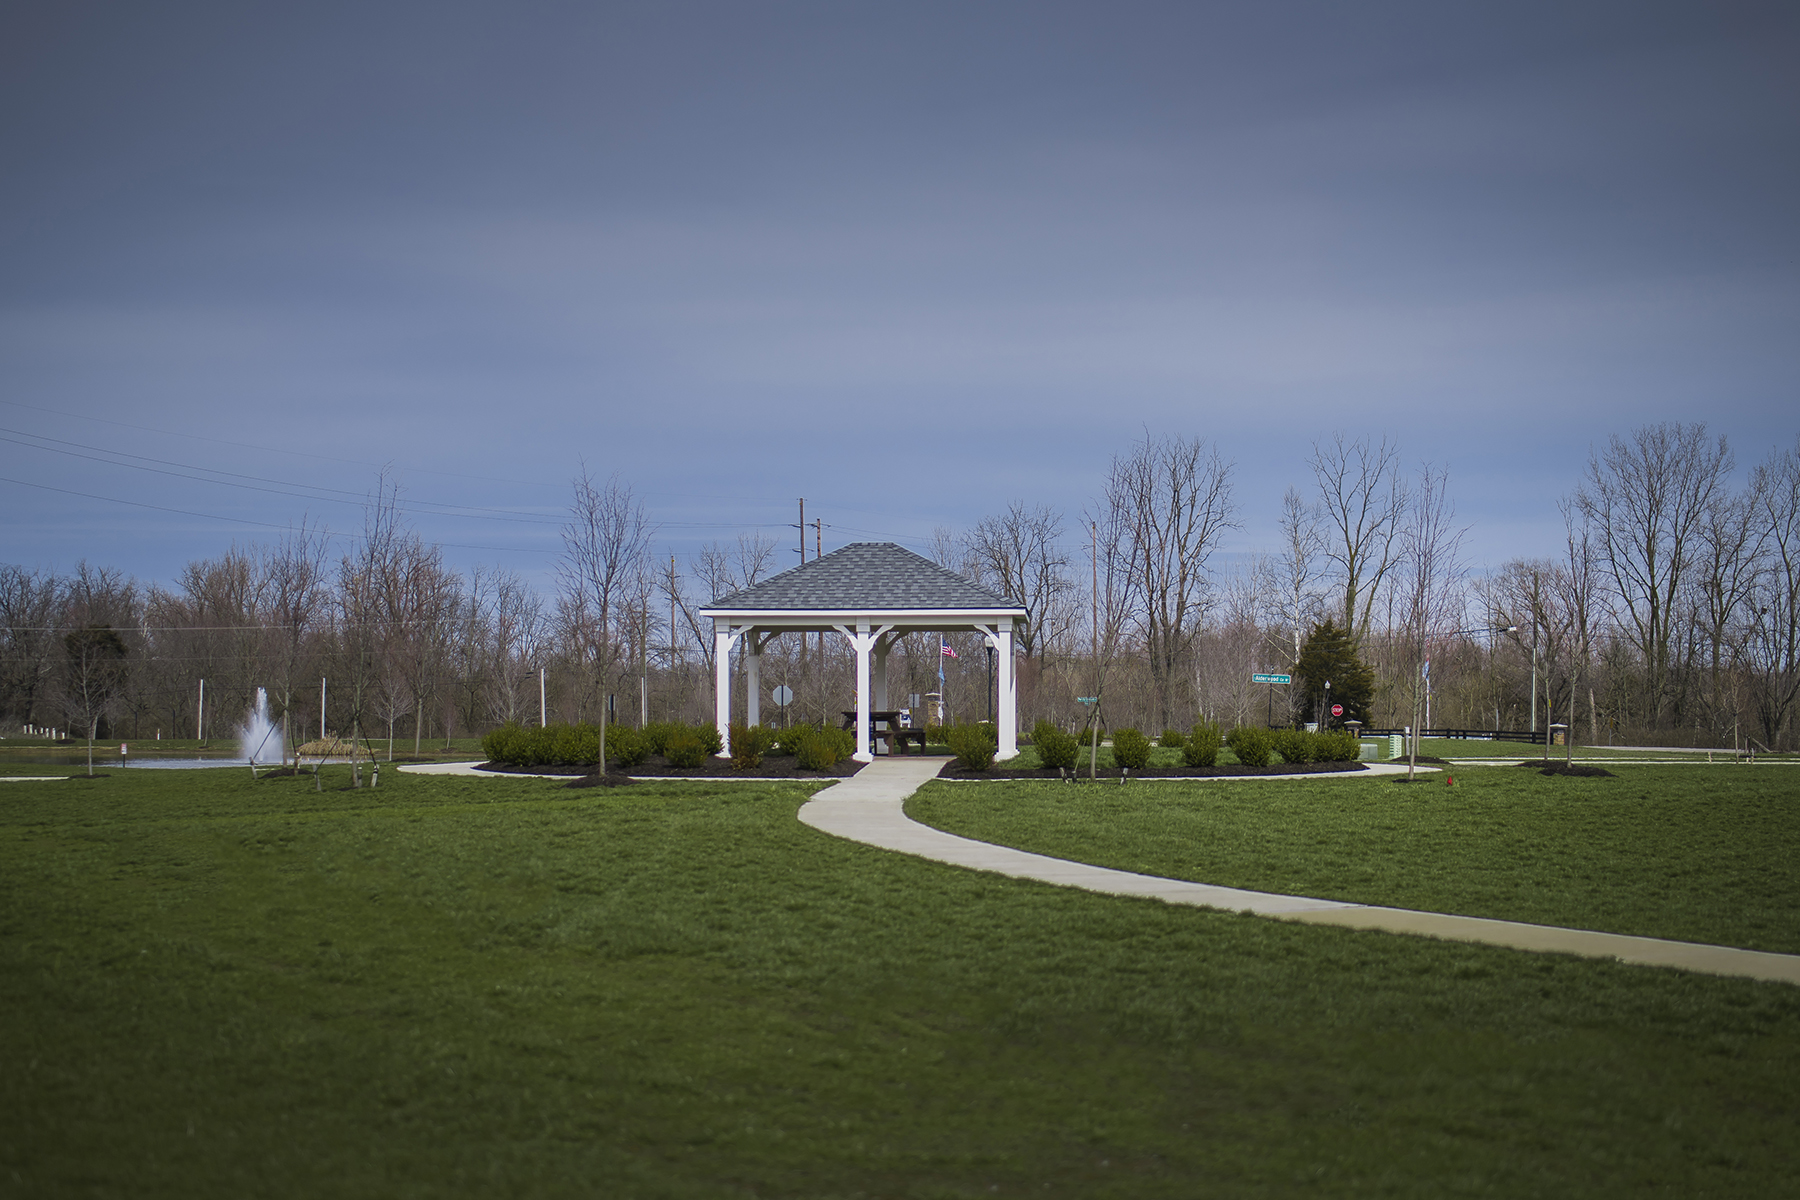 Darby Fields Park